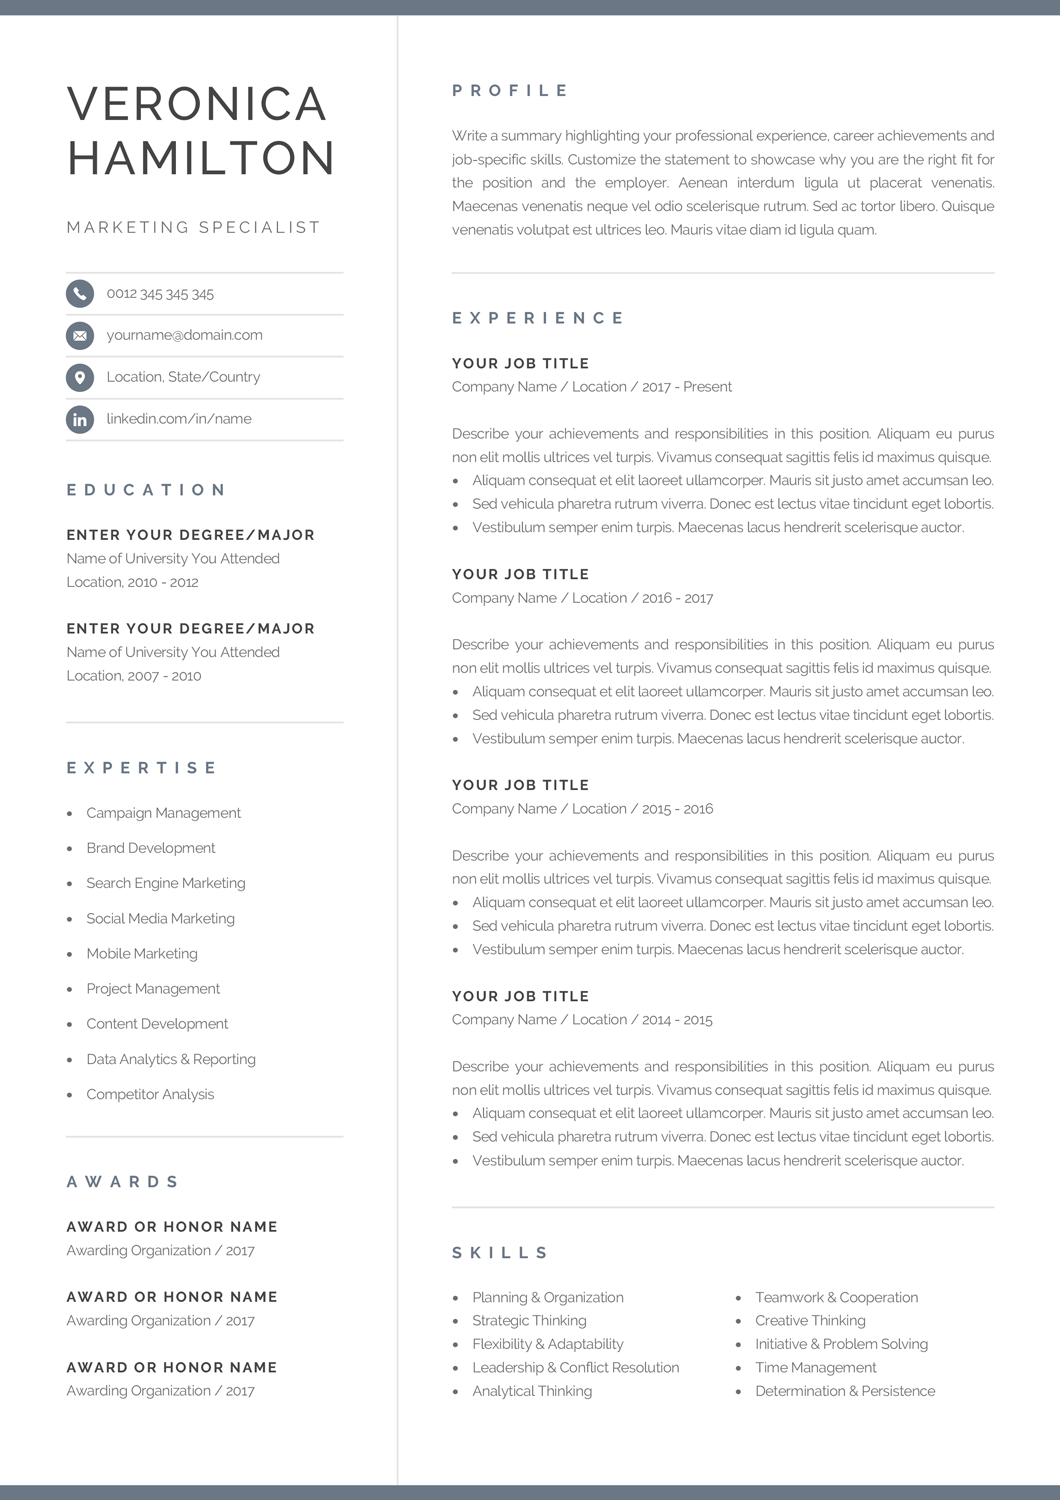 Resume Template With Matching Cover Letter And References Page Professional For Microsoft Word Mac Pages